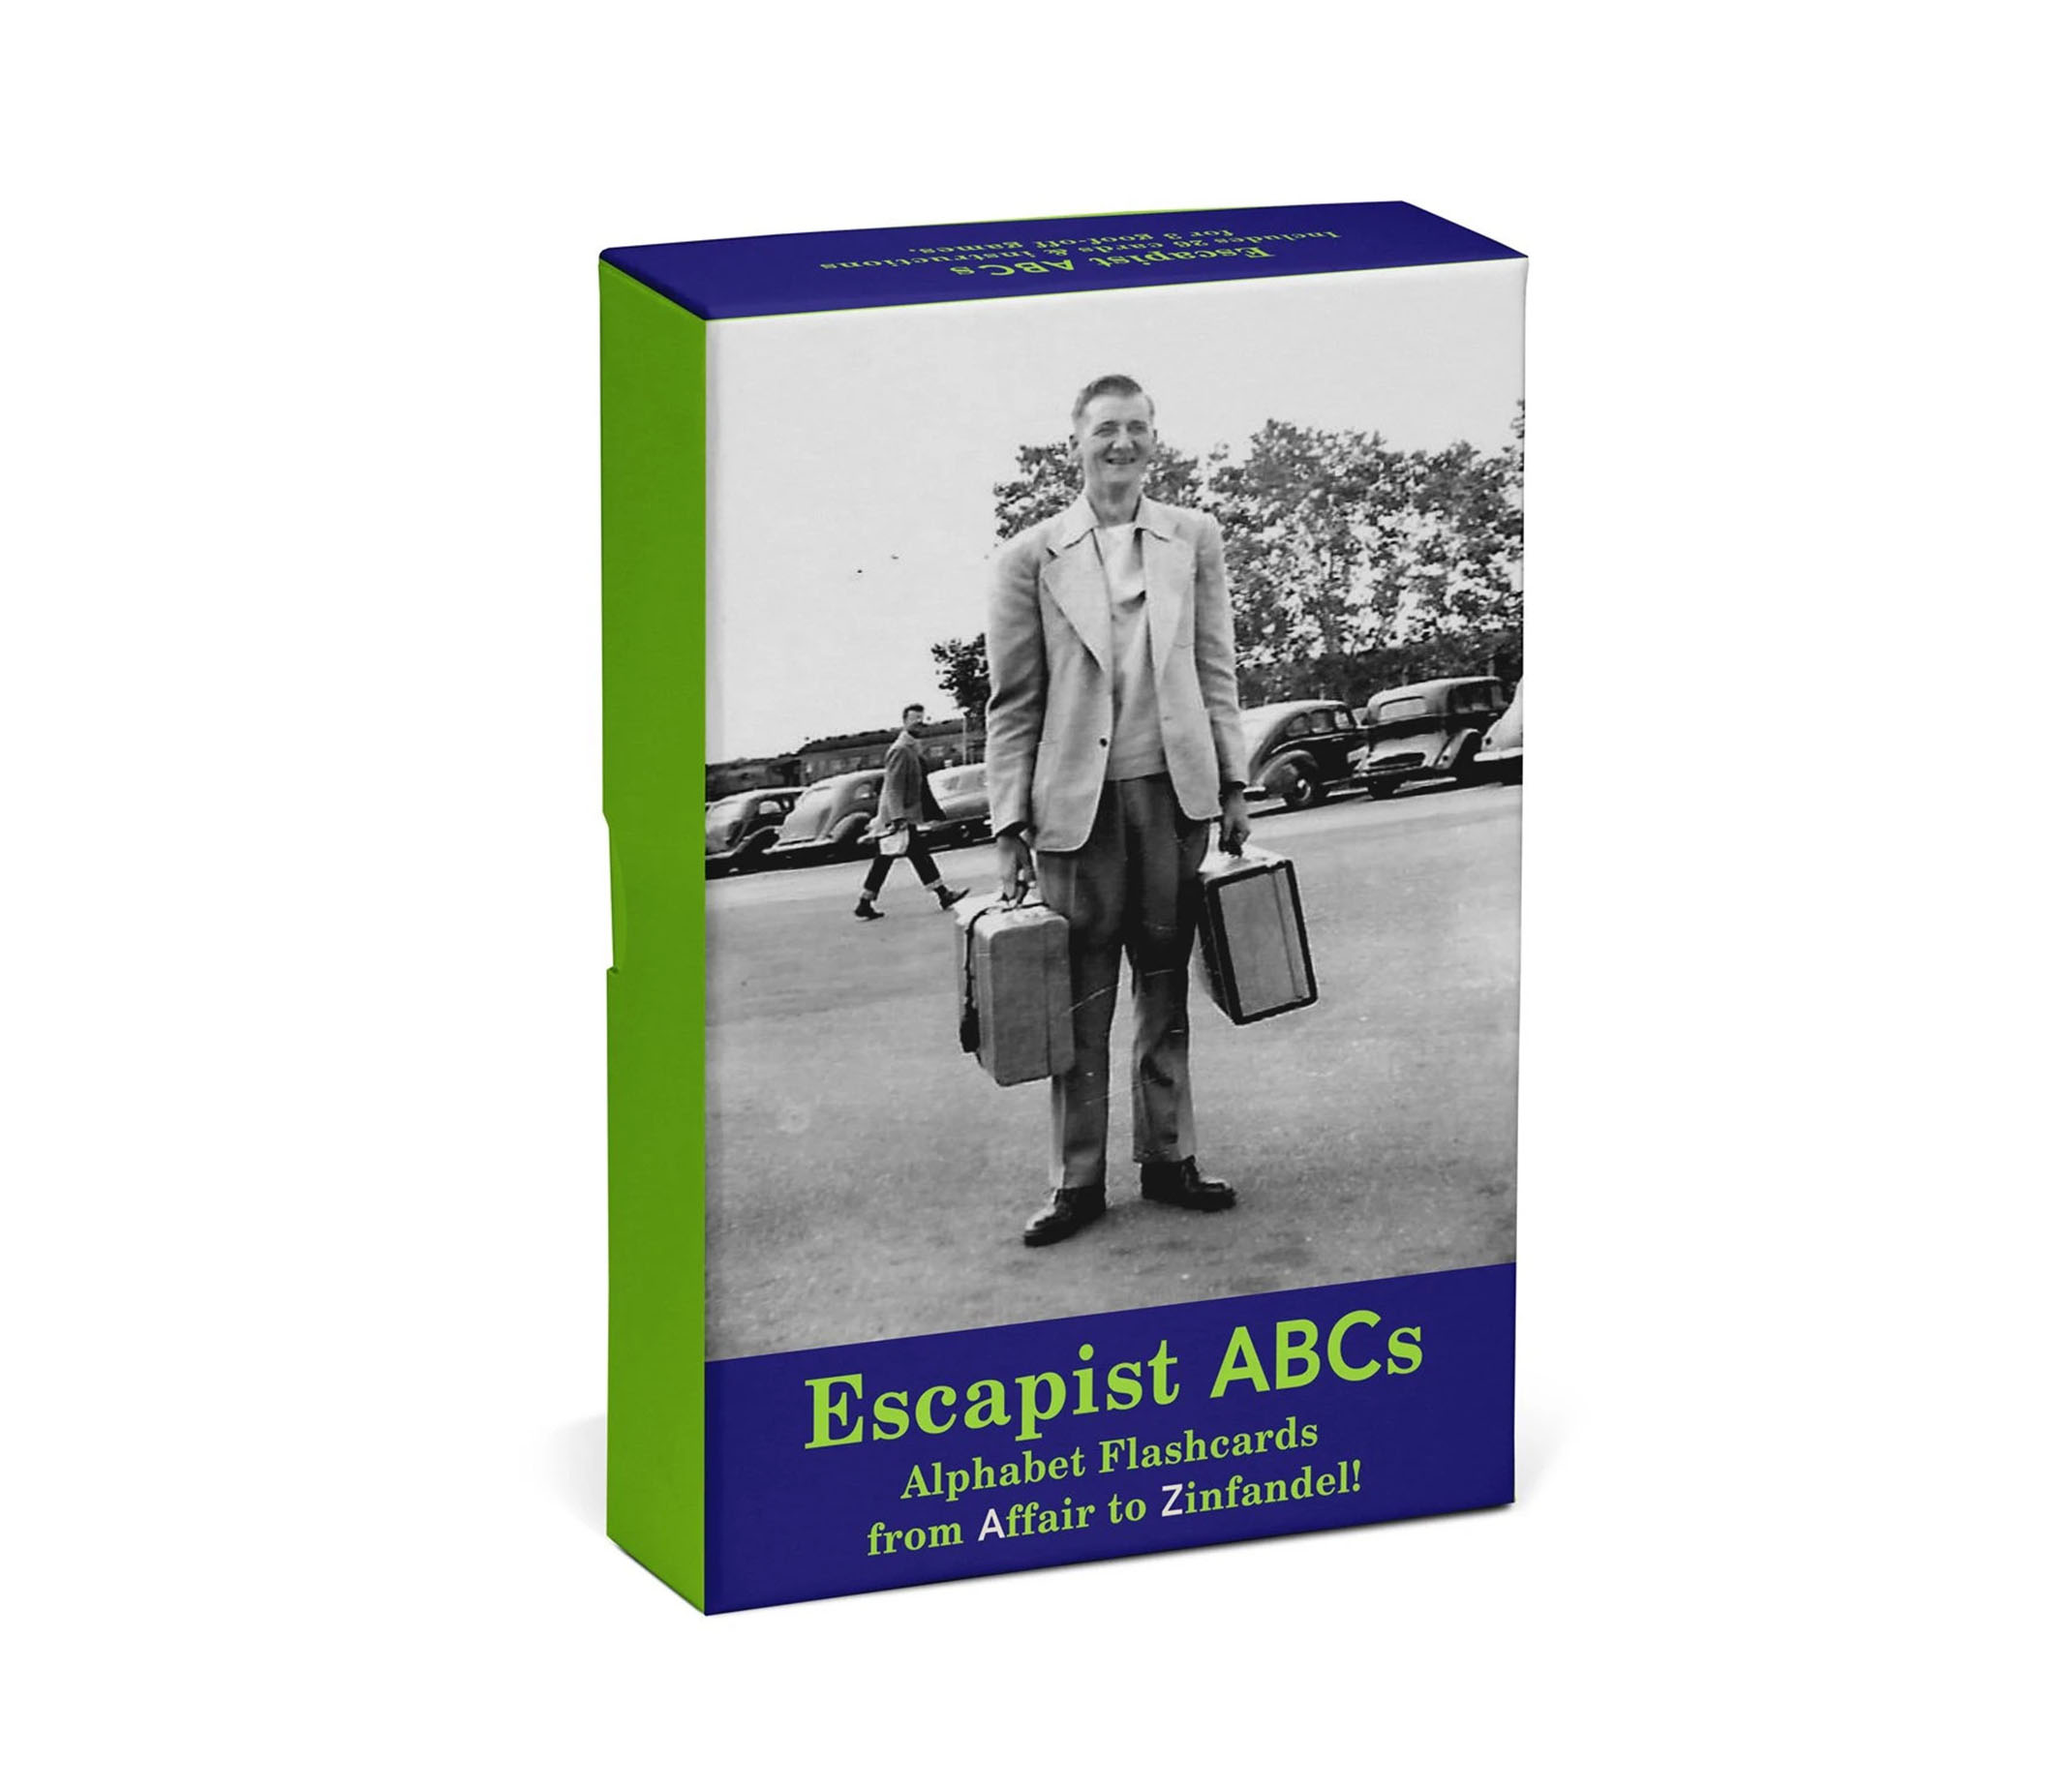 On an angle the Escapist ABC box is displayed. The box features a man in a black and white photograph from the 1950s with a a travel bag on each hand smiling.